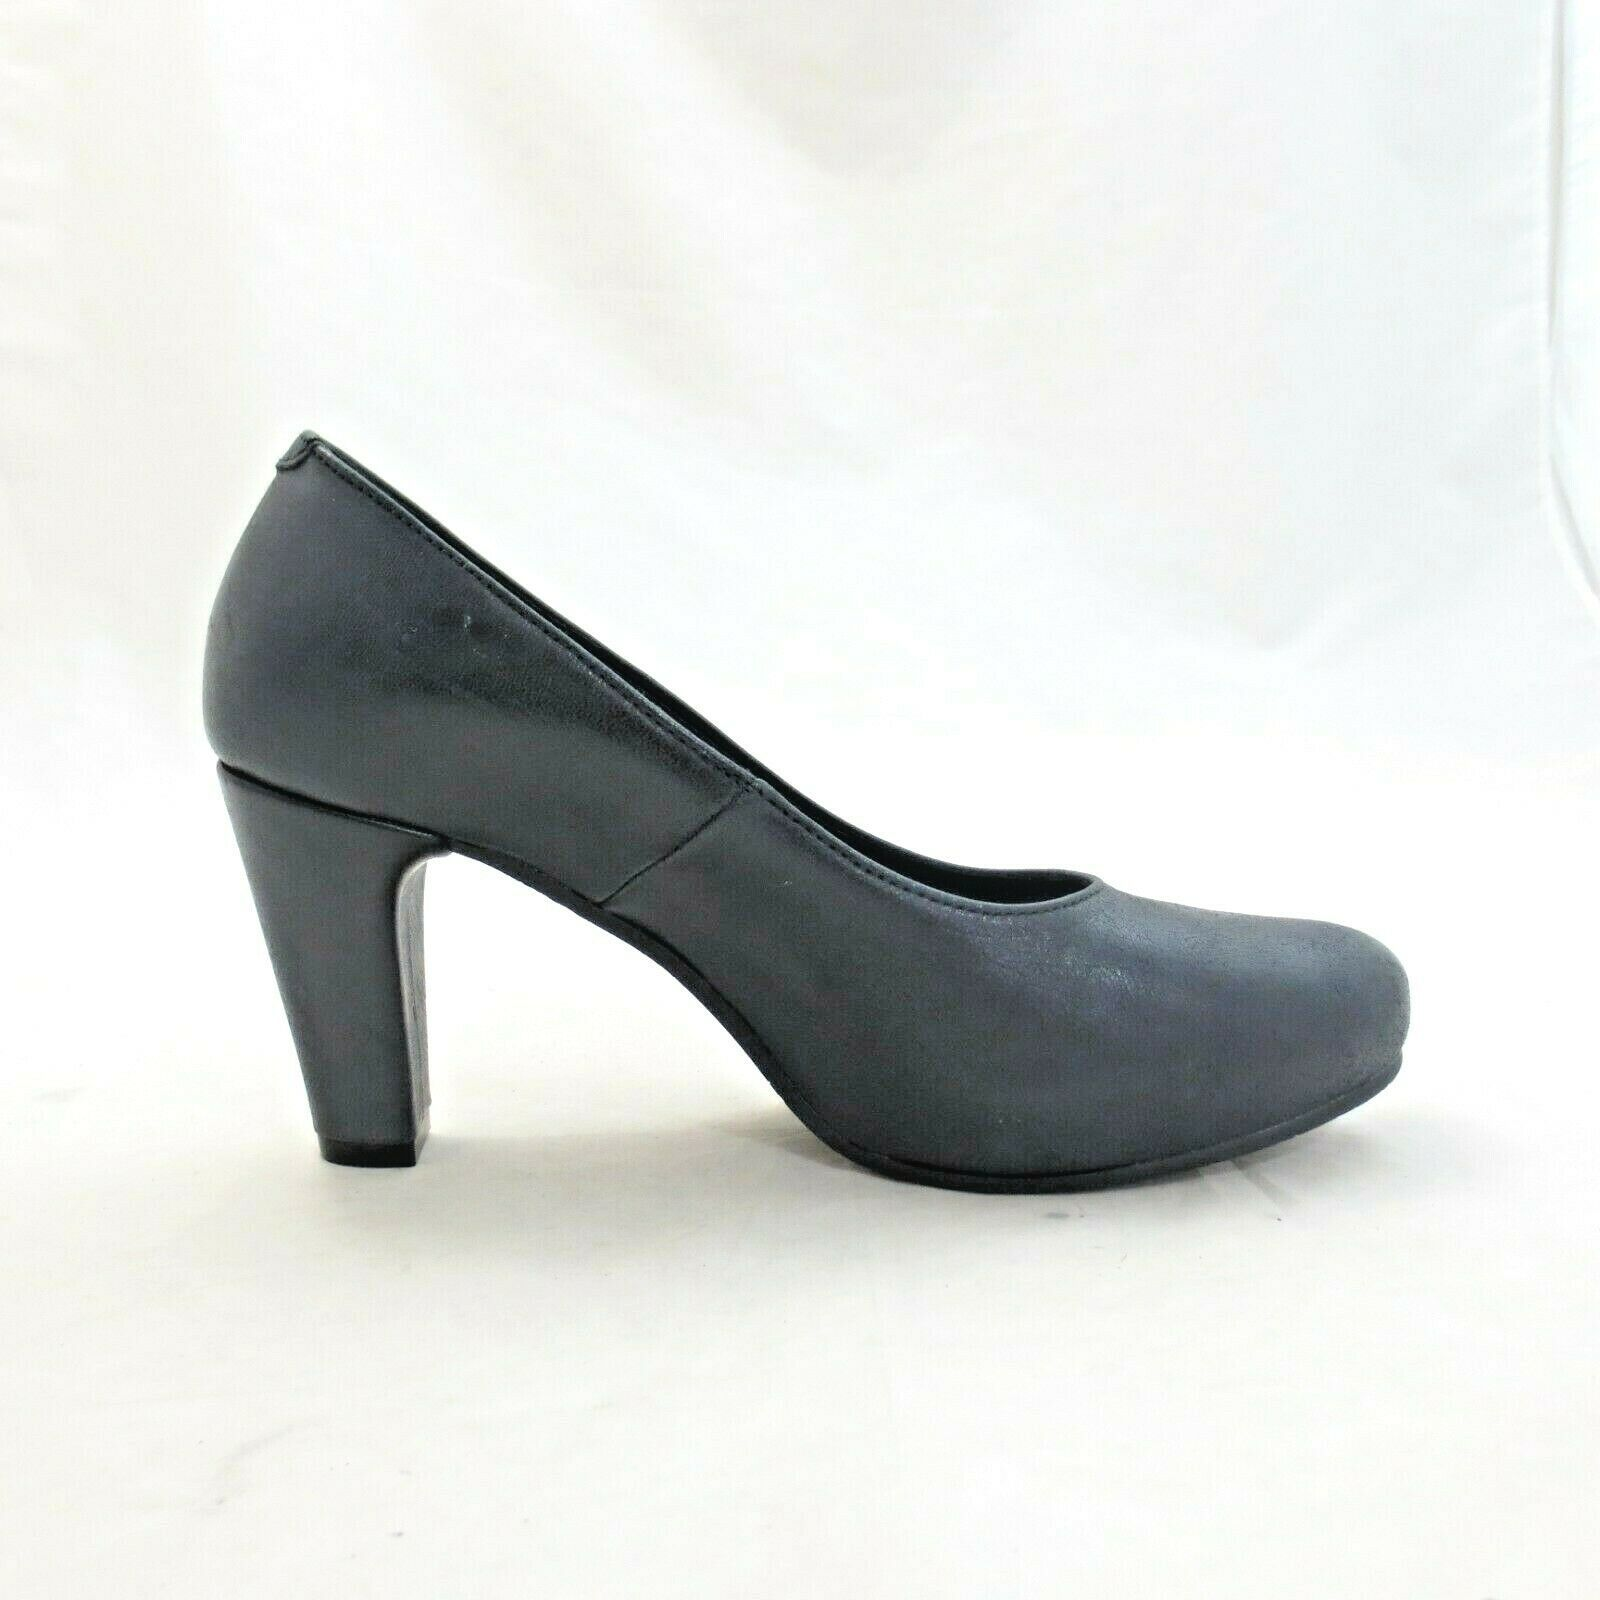 Primary image for 37 / 6.5 US - Cordani Anthropologie Black Smooth Leather Heels Pumps NEW 0425AC